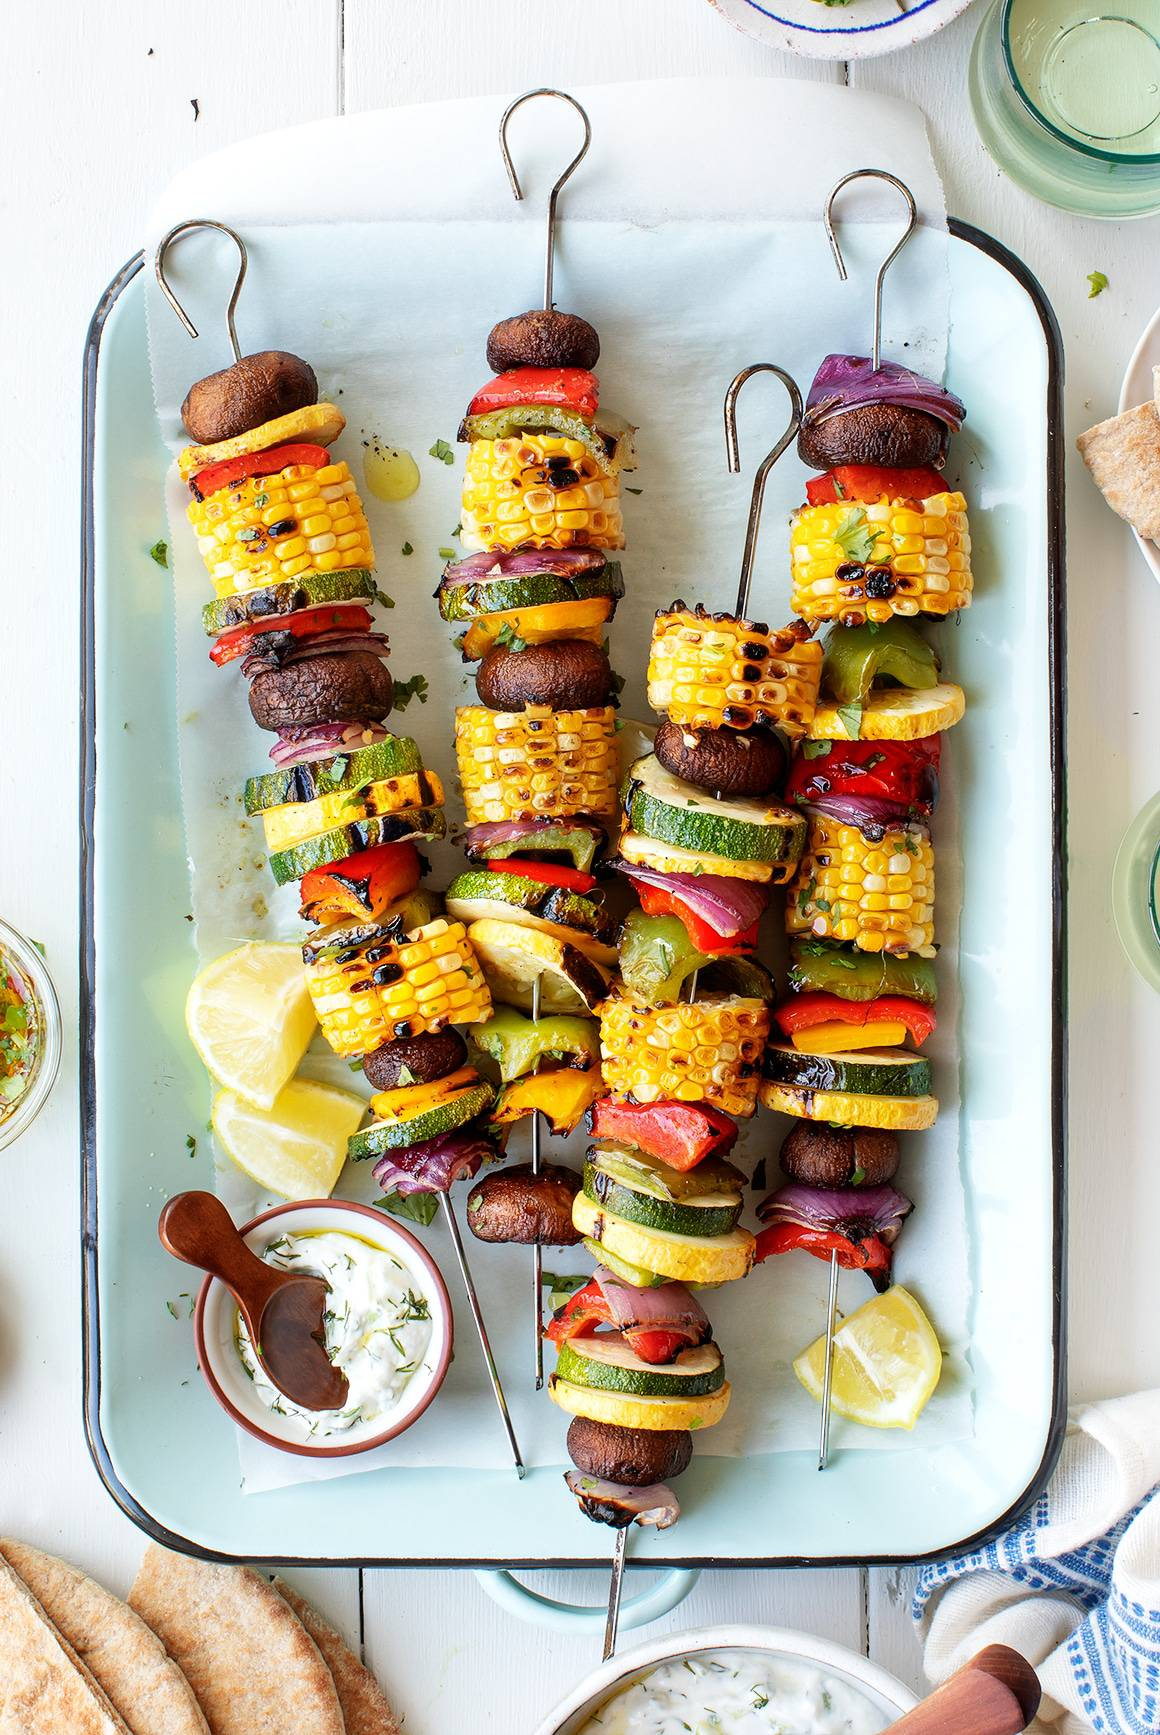 Easy zucchini recipes - grilled vegetable skewers